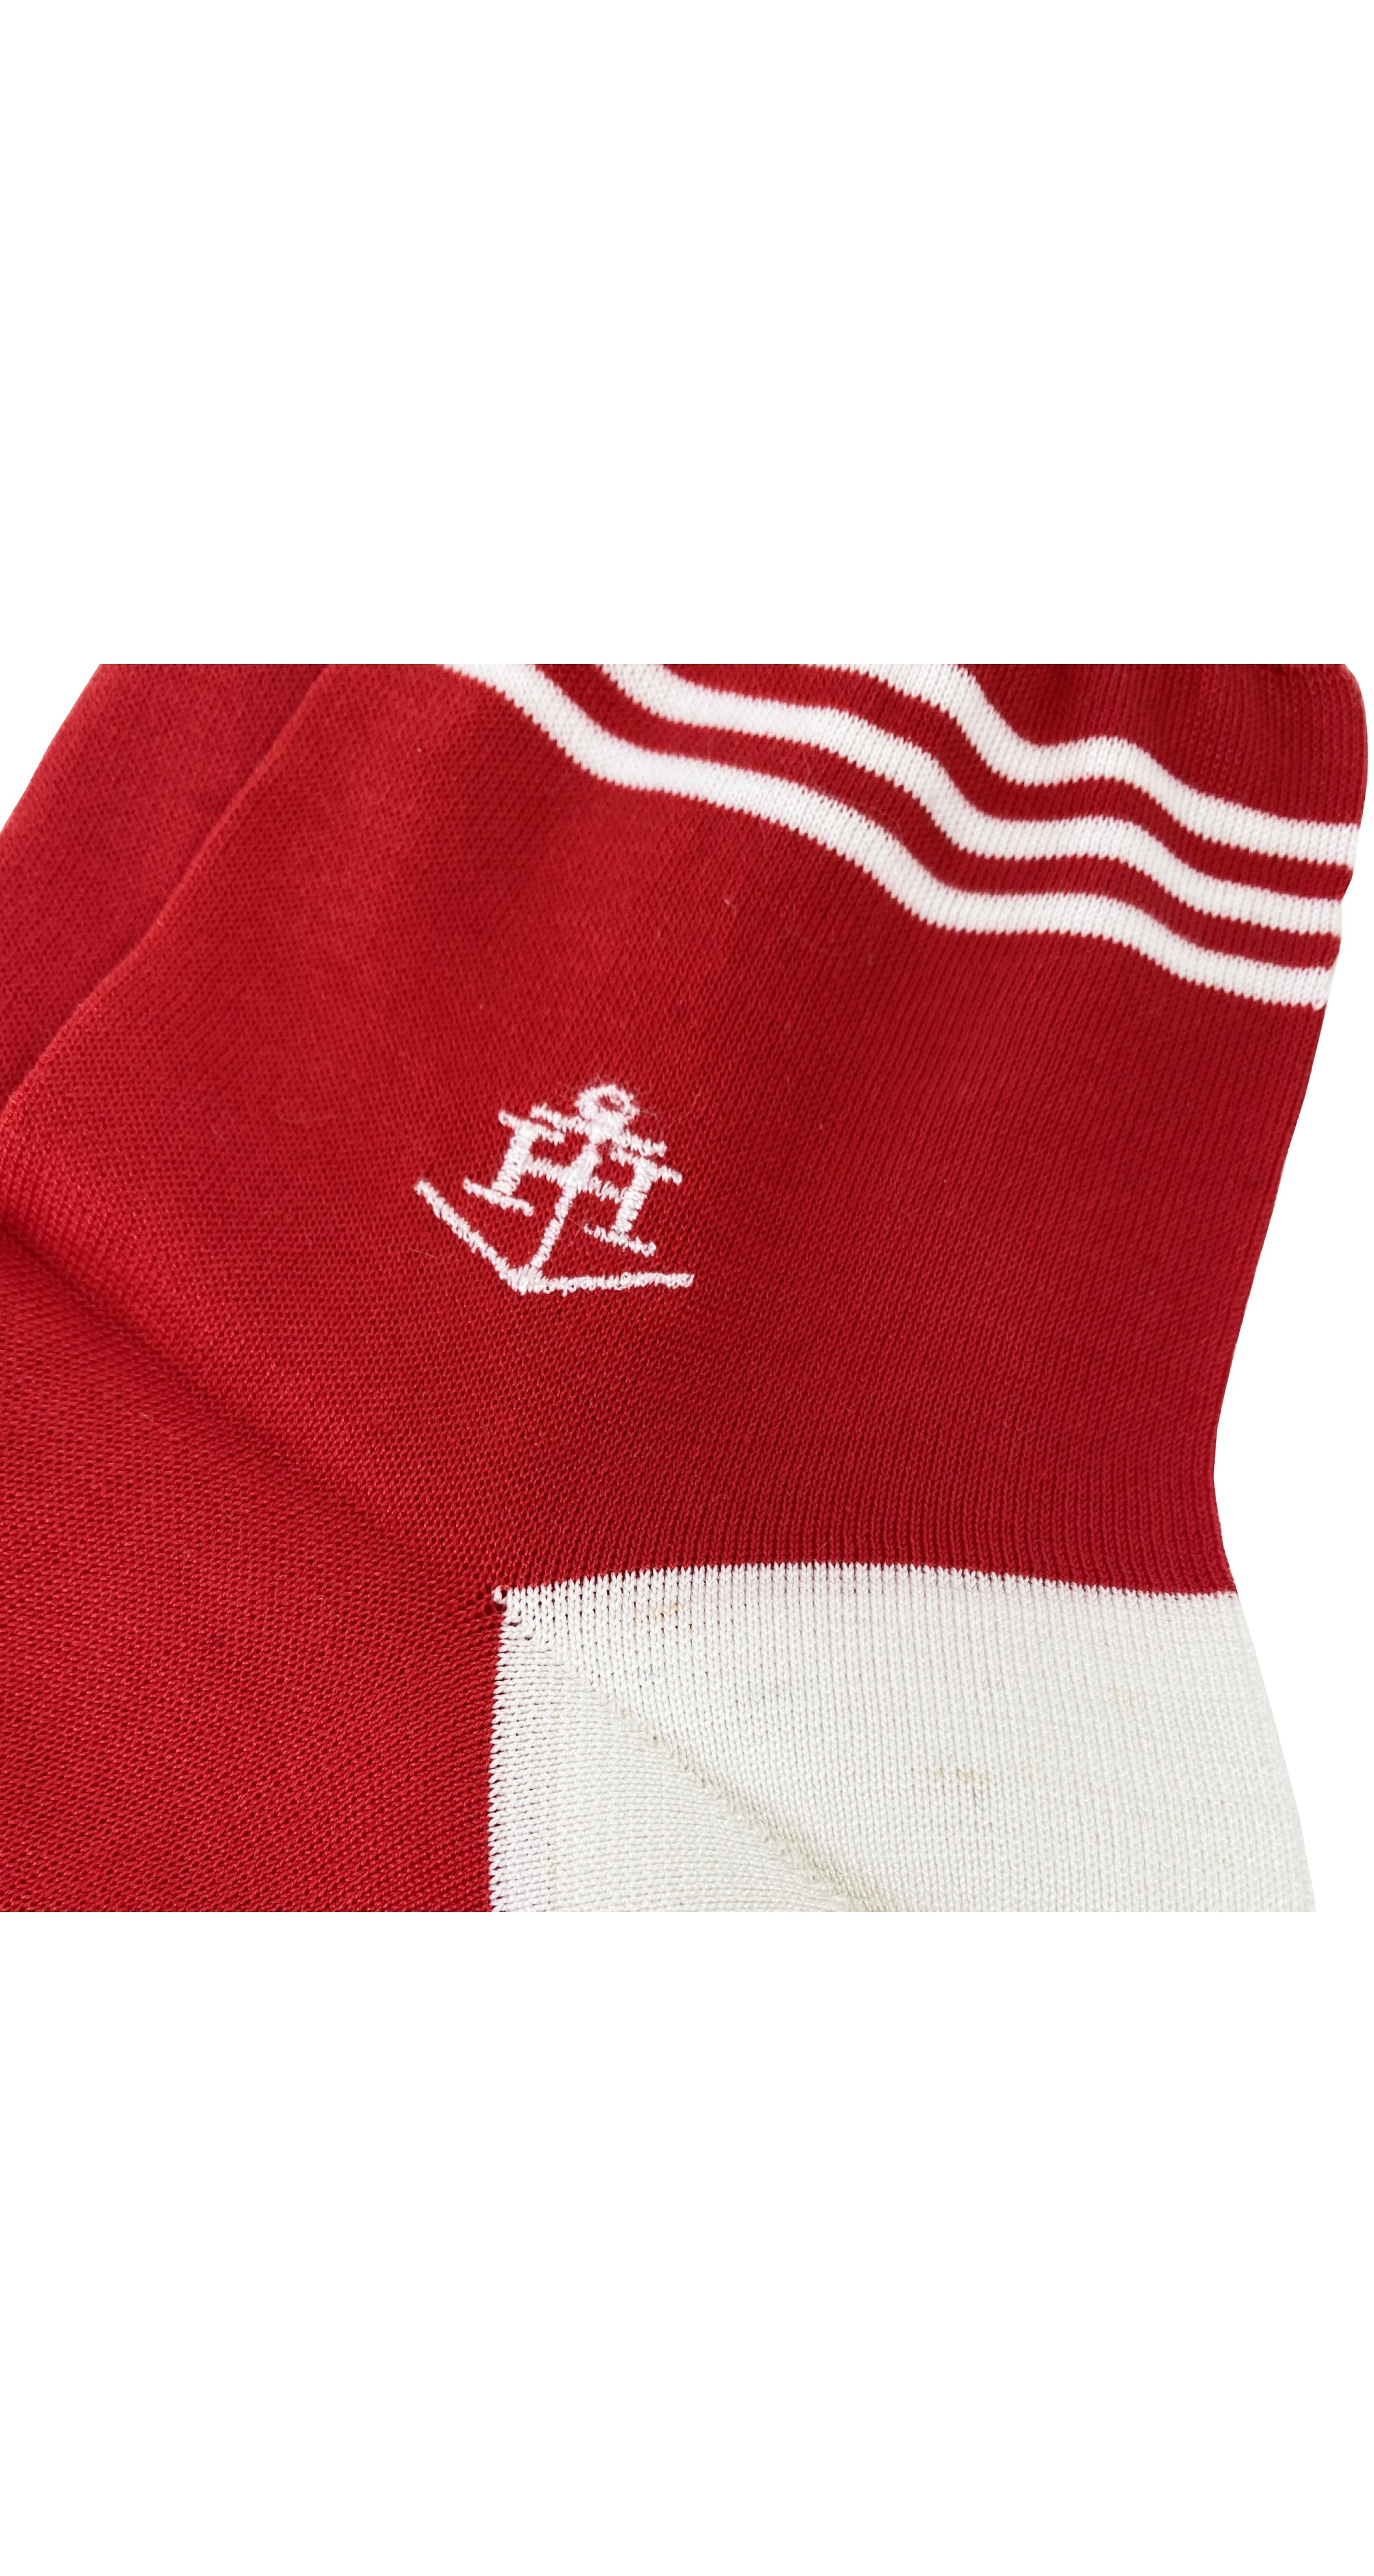 1980s Red & White Silk Knit Socks